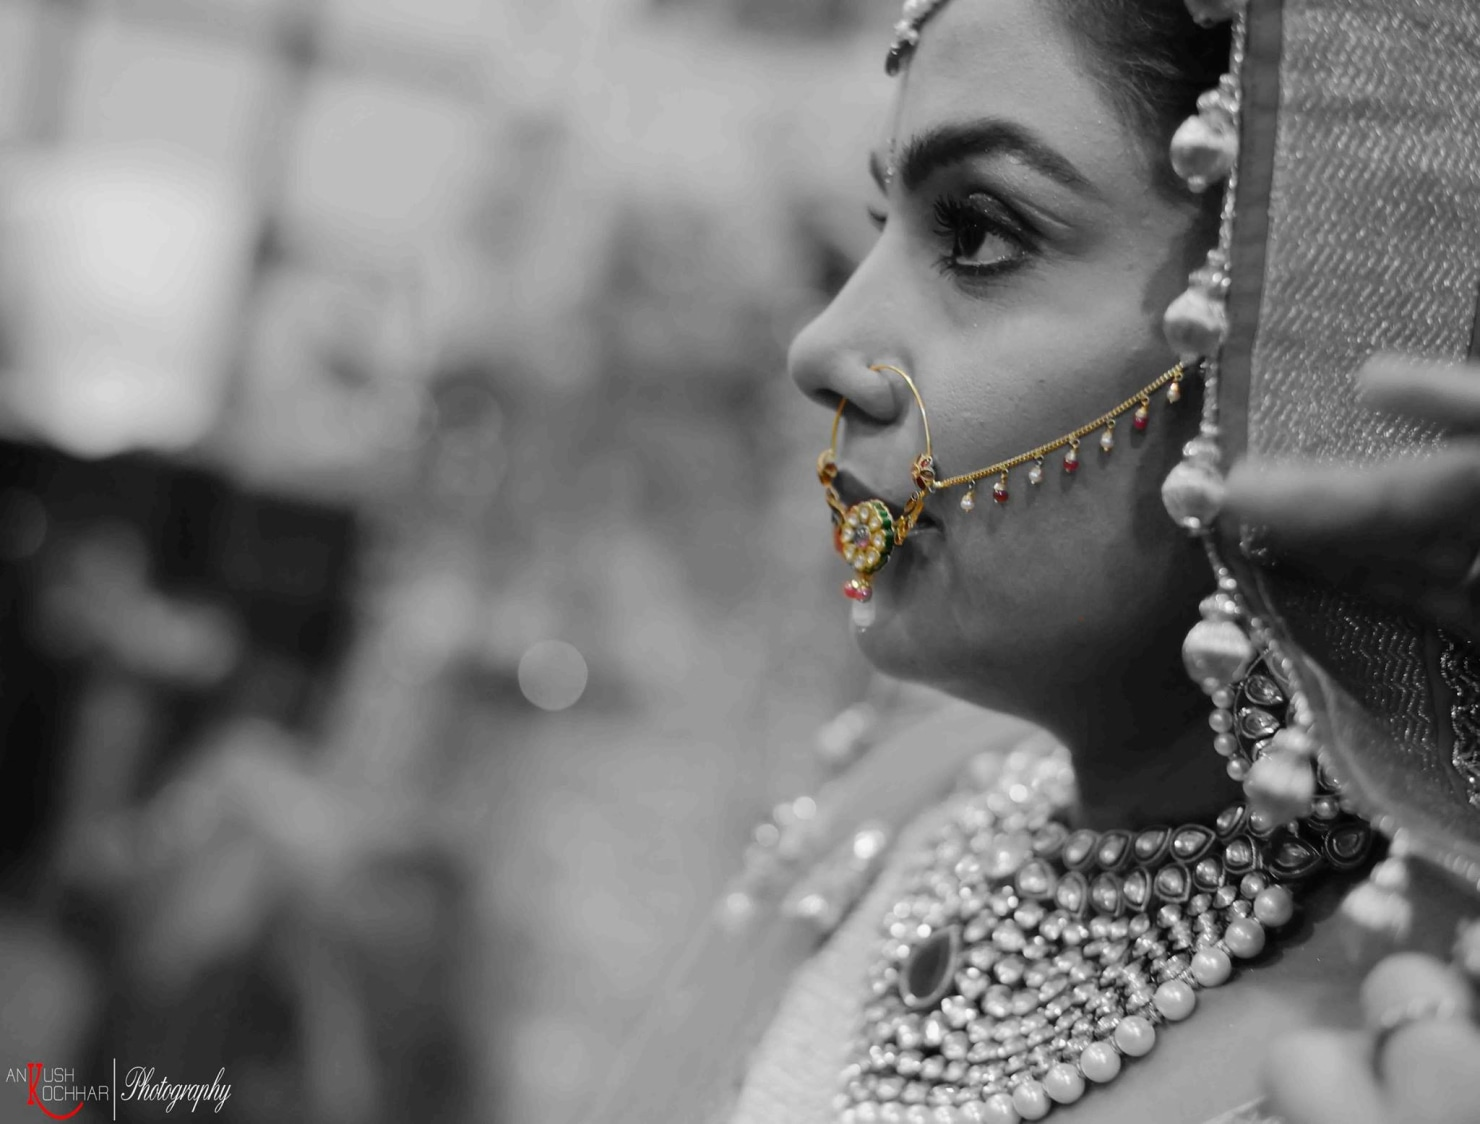 Bride Monochrome Shot by AKfotography Wedding-photography | Weddings Photos & Ideas